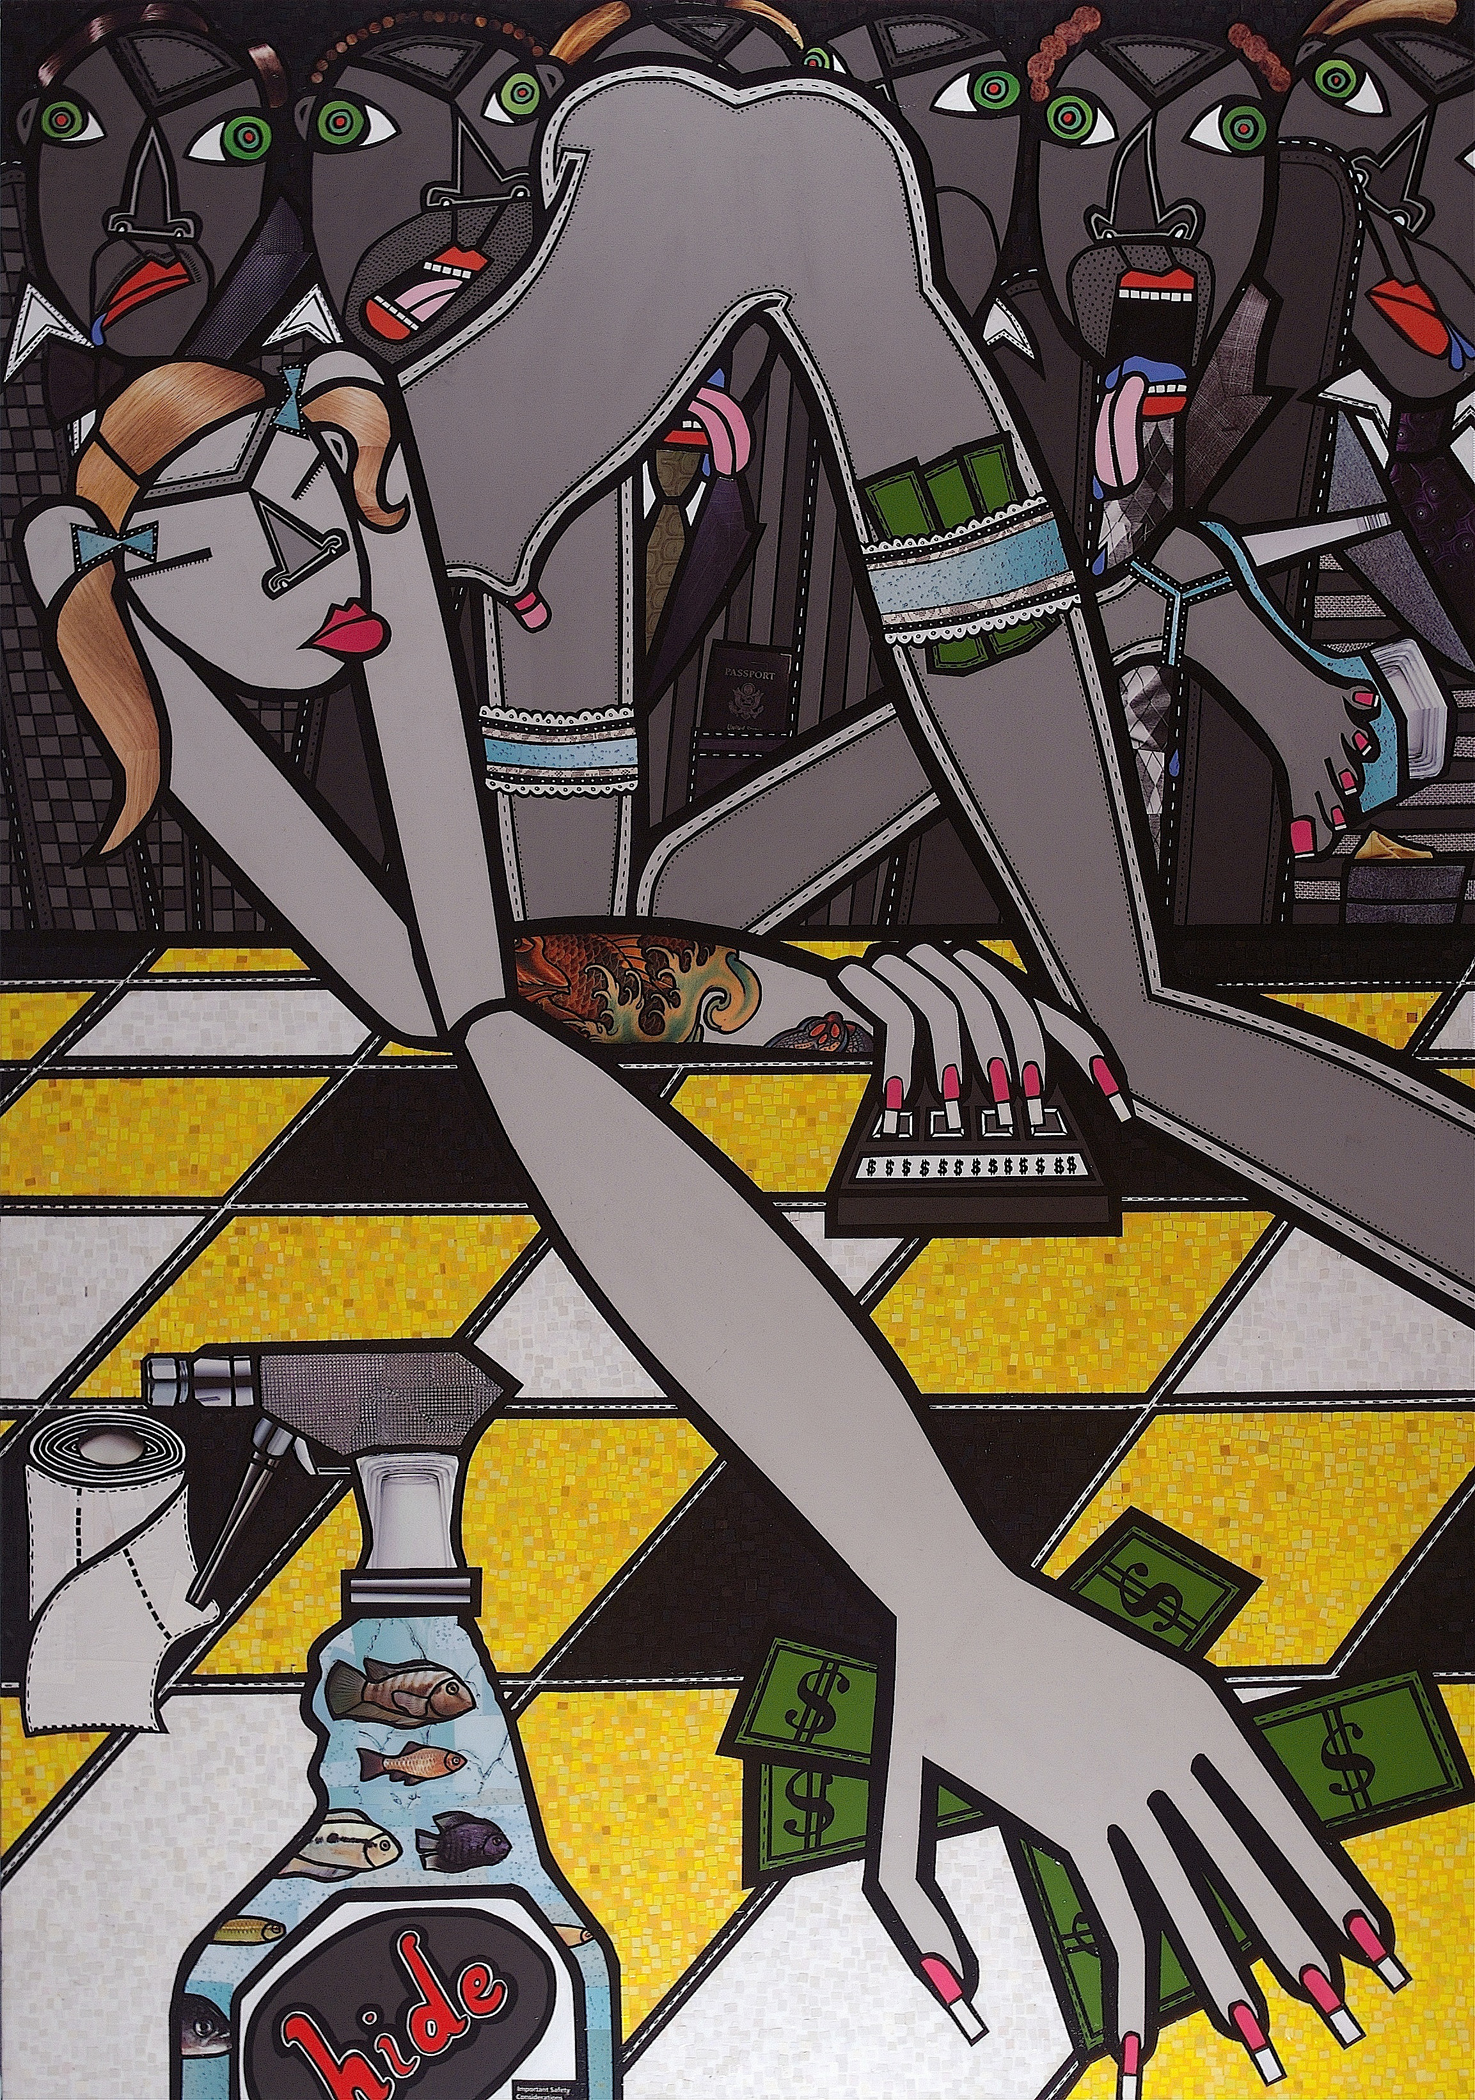 Bull's-eye, acrylic and paper collage on canvas, 2009, private collection